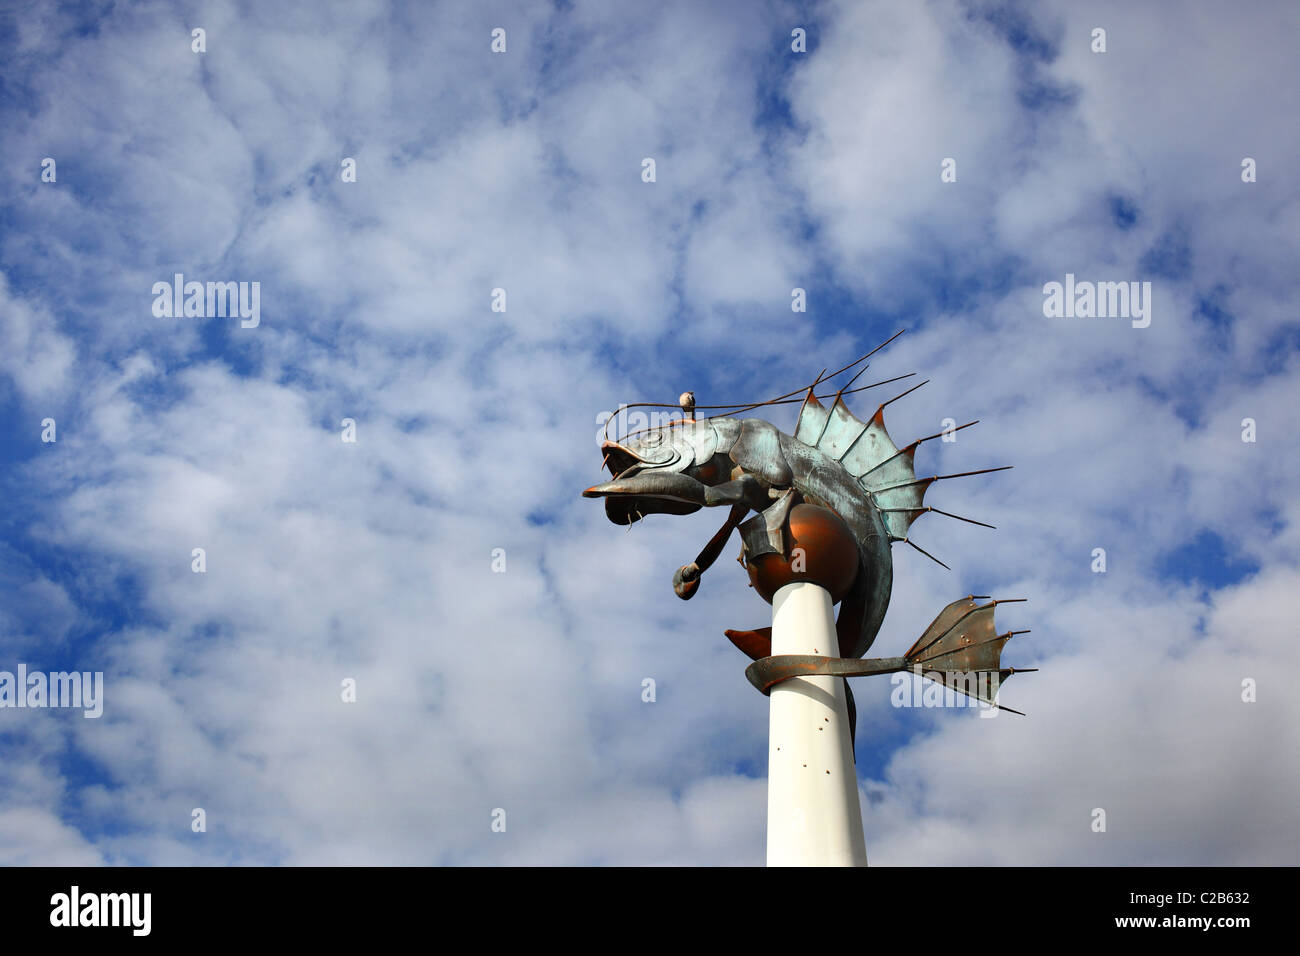 The shrimp/prawn sculpture designed by metalworker Brian Fell on Plymouth's barbican in Devon, UK. - Stock Image